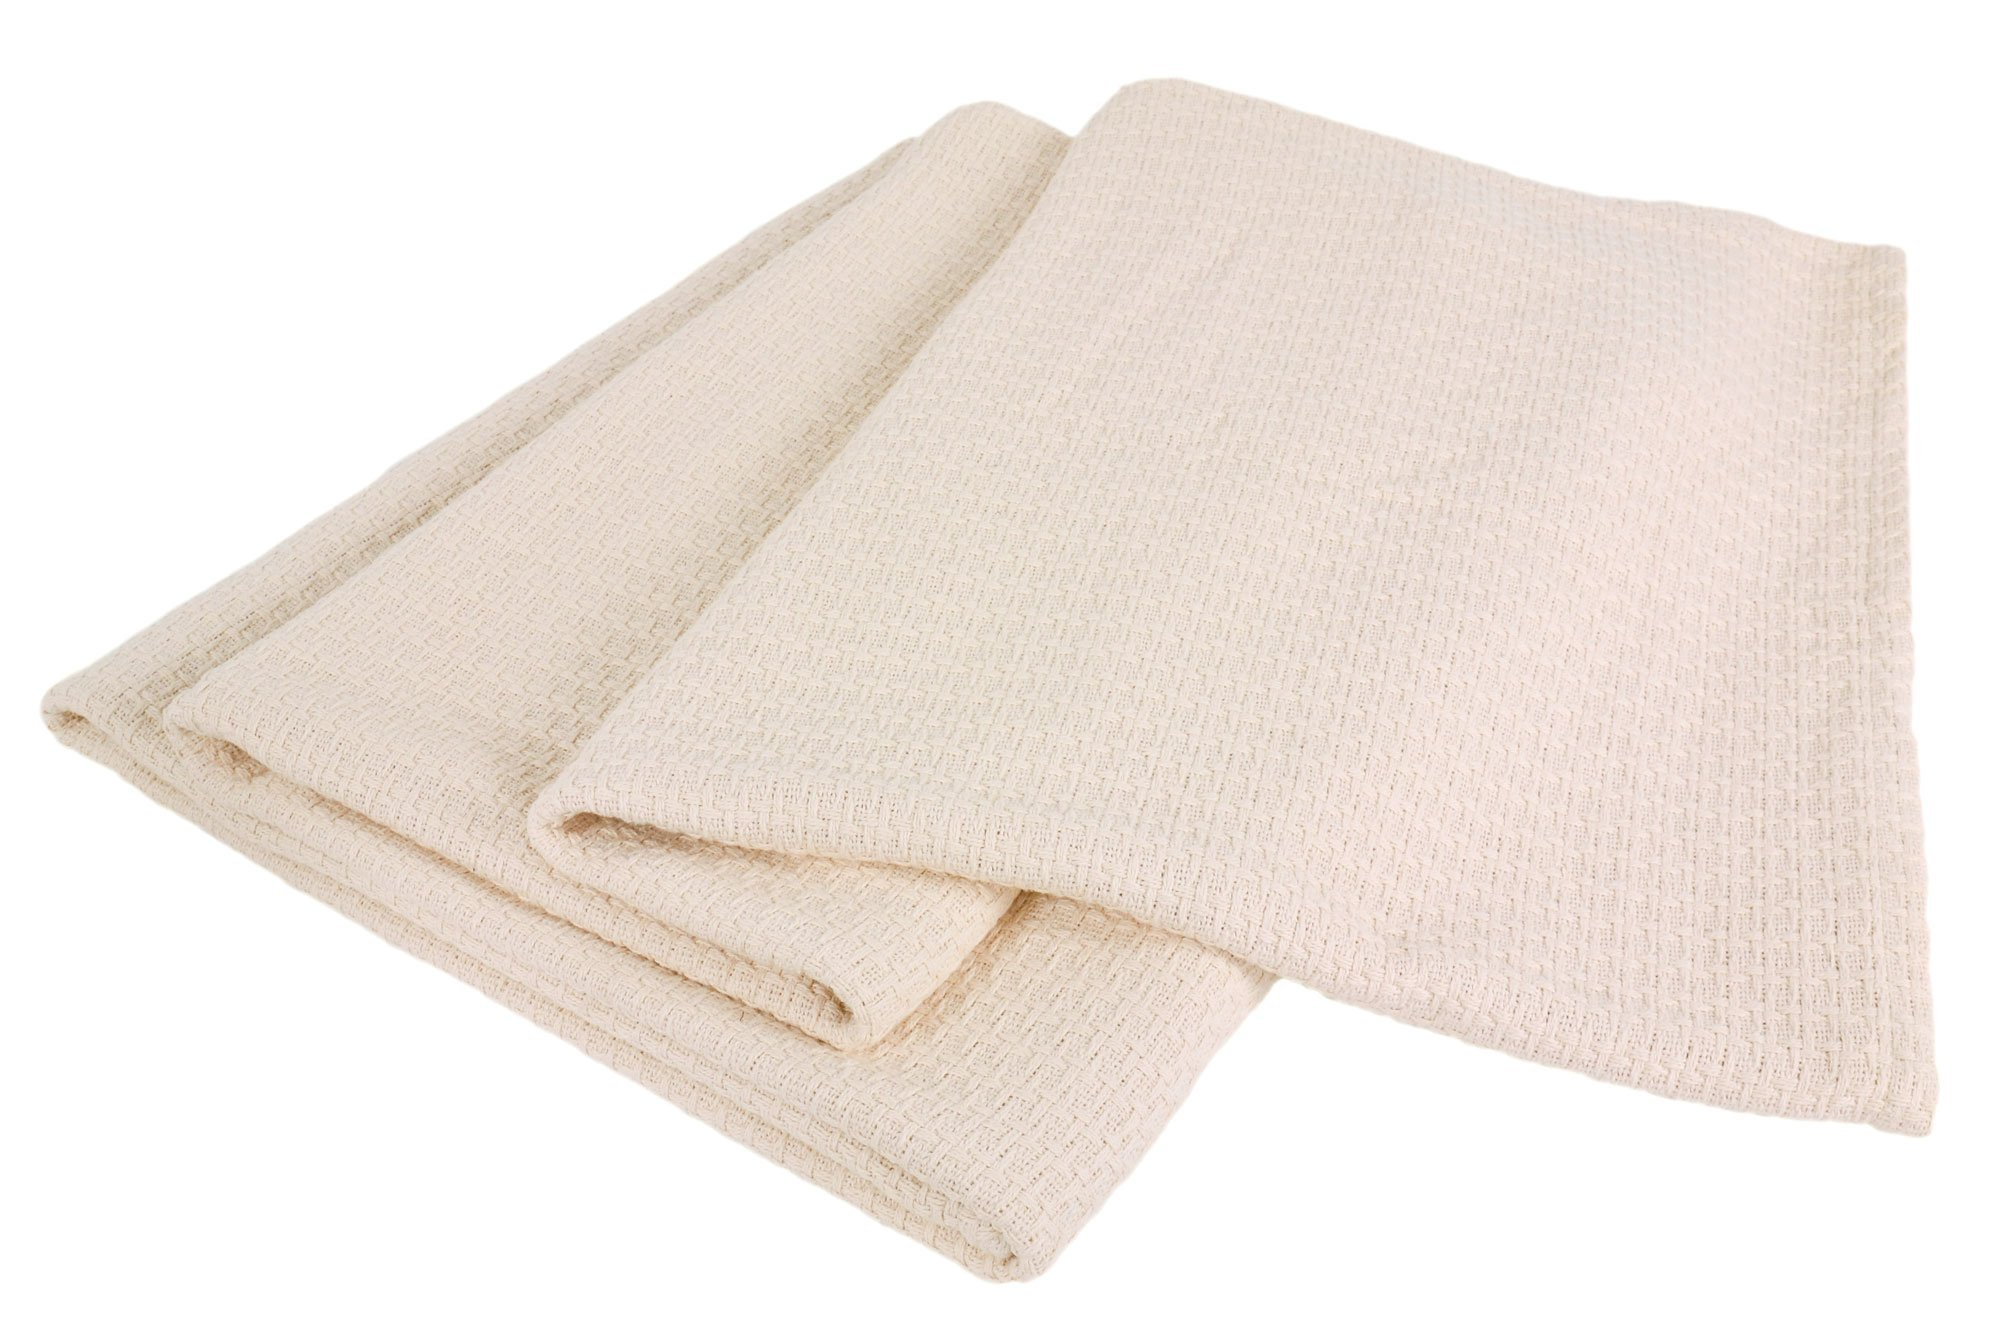 Elite Home Grand Hotel All-Natural 100-Percent Cotton Basket Woven Blanket Twin Size, Ivory